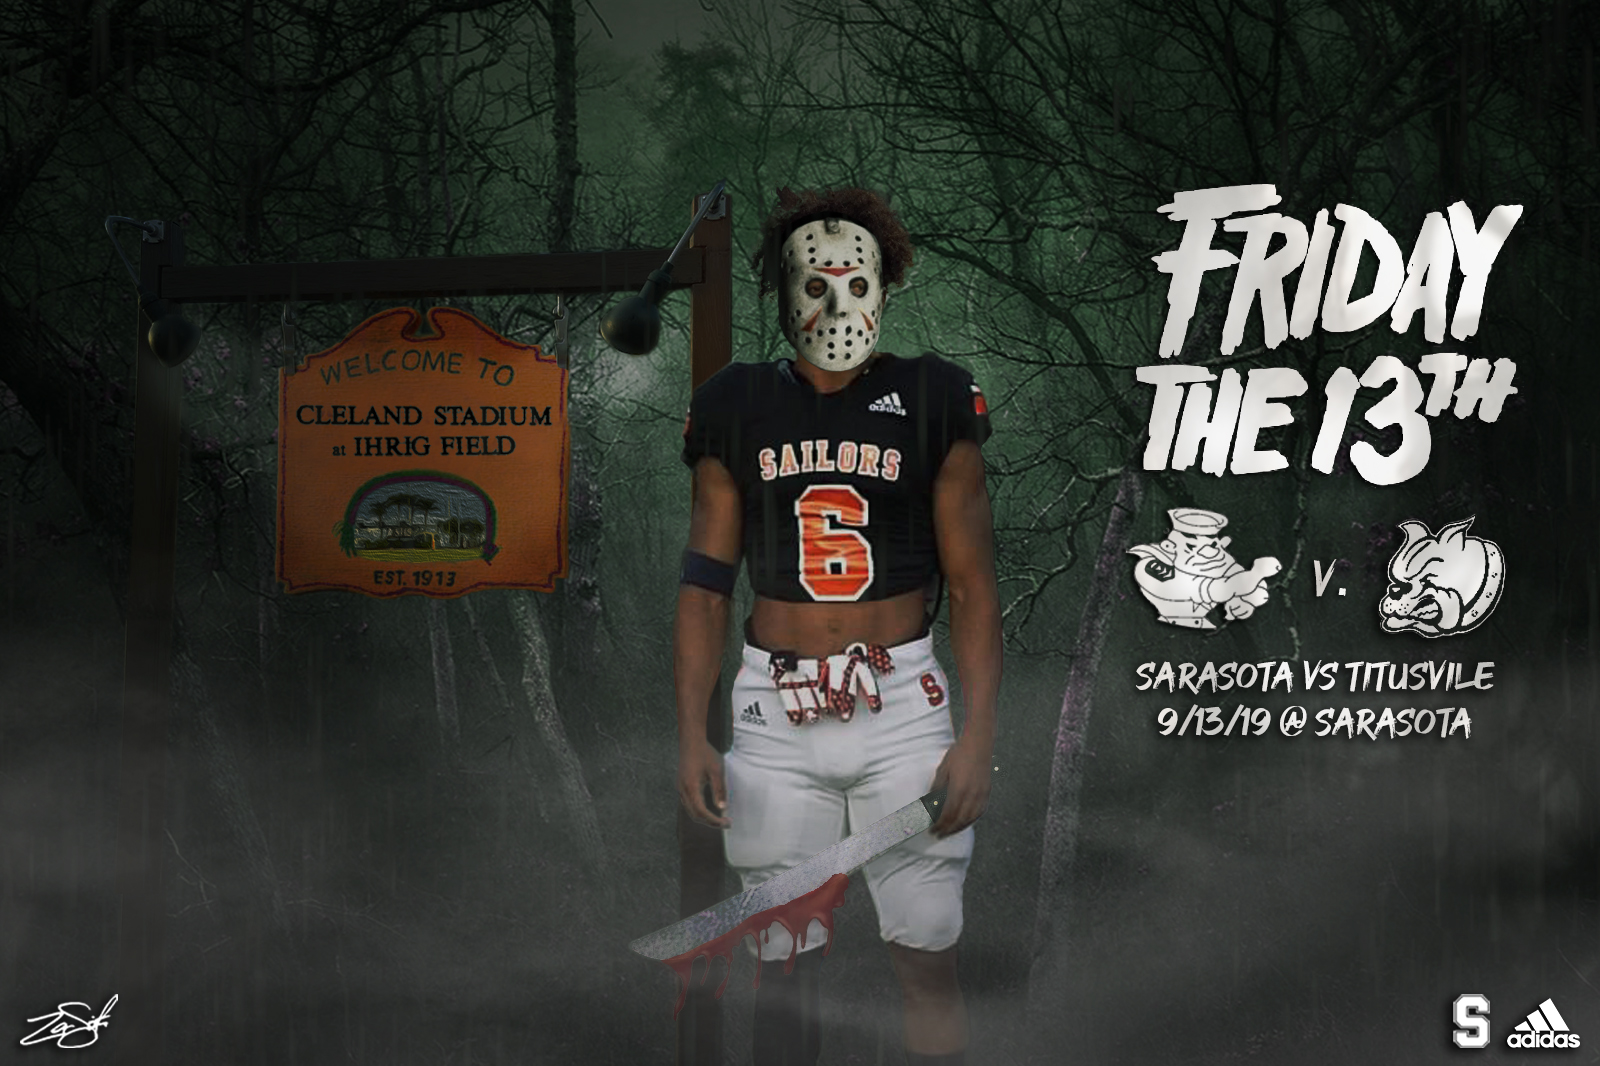 Friday the 13th Game Promo